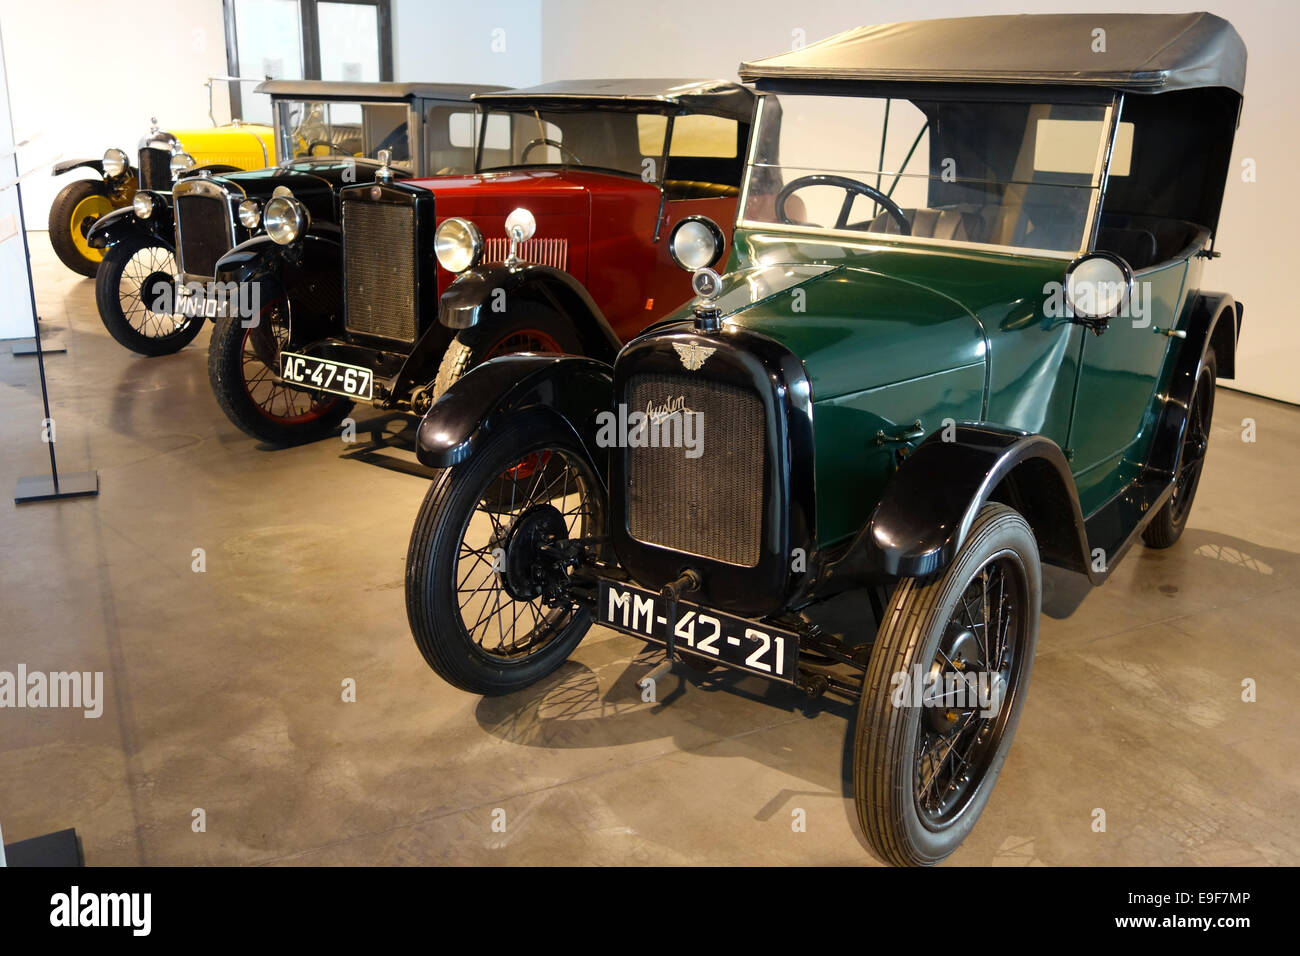 1930 Austin Seven and a 1929 Morris Minor 1930 at Car, Automobile Museum of Málaga, Andalusia, Spain. - Stock Image